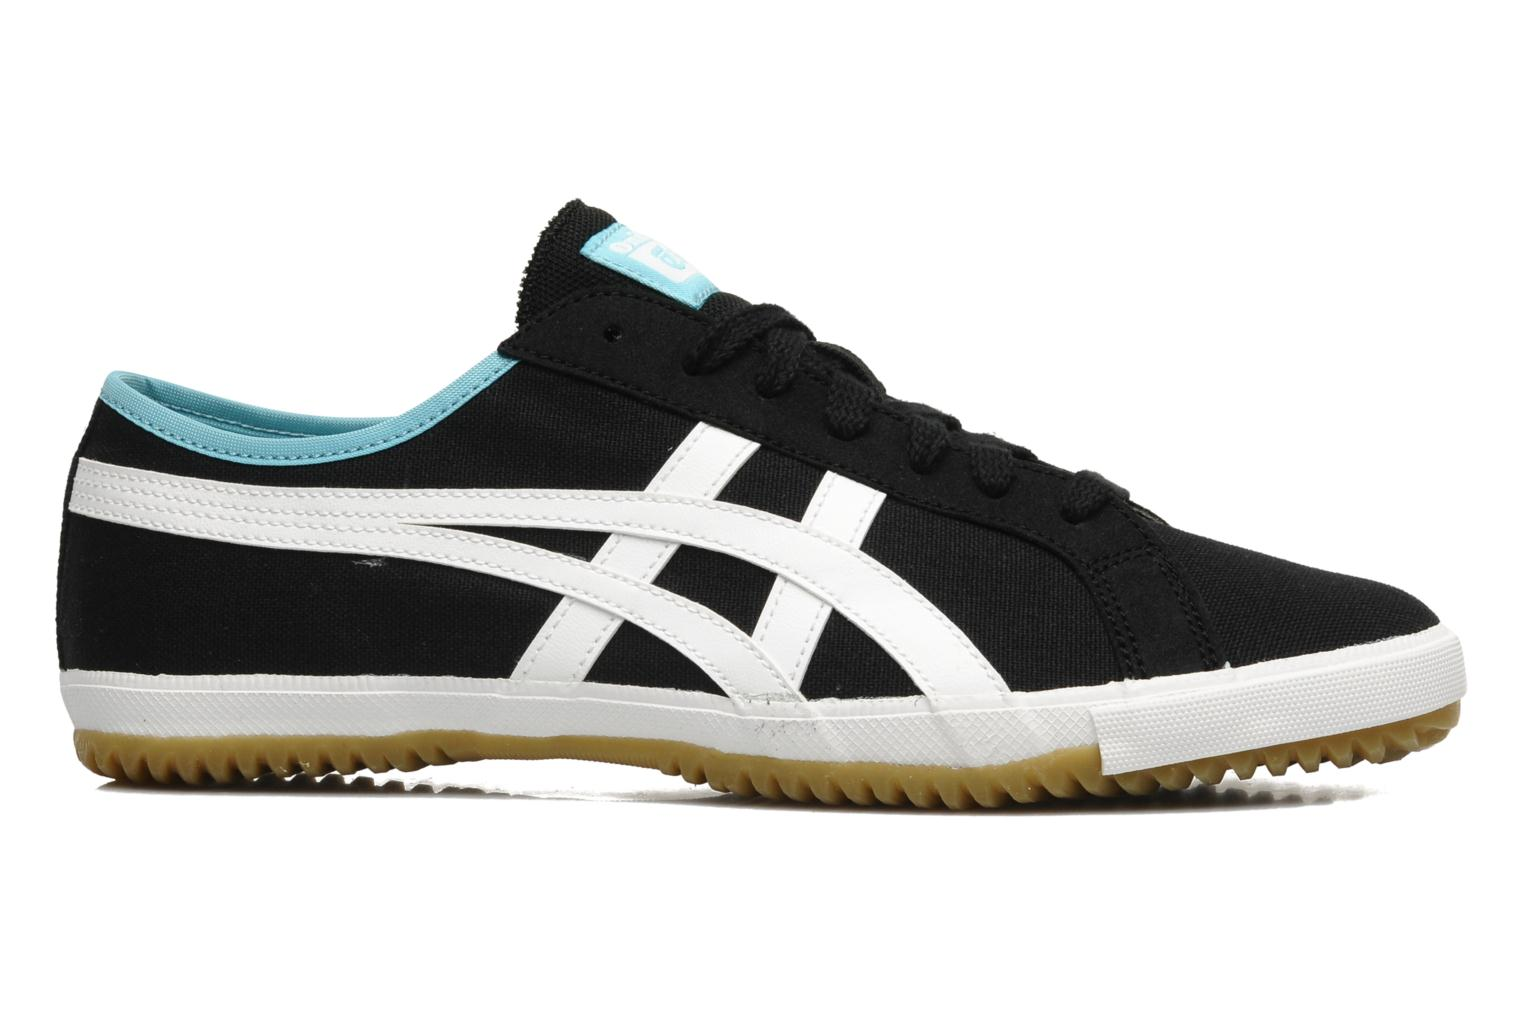 onitsuka tiger retro glide cv m trainers in black at sarenza co uk  136127